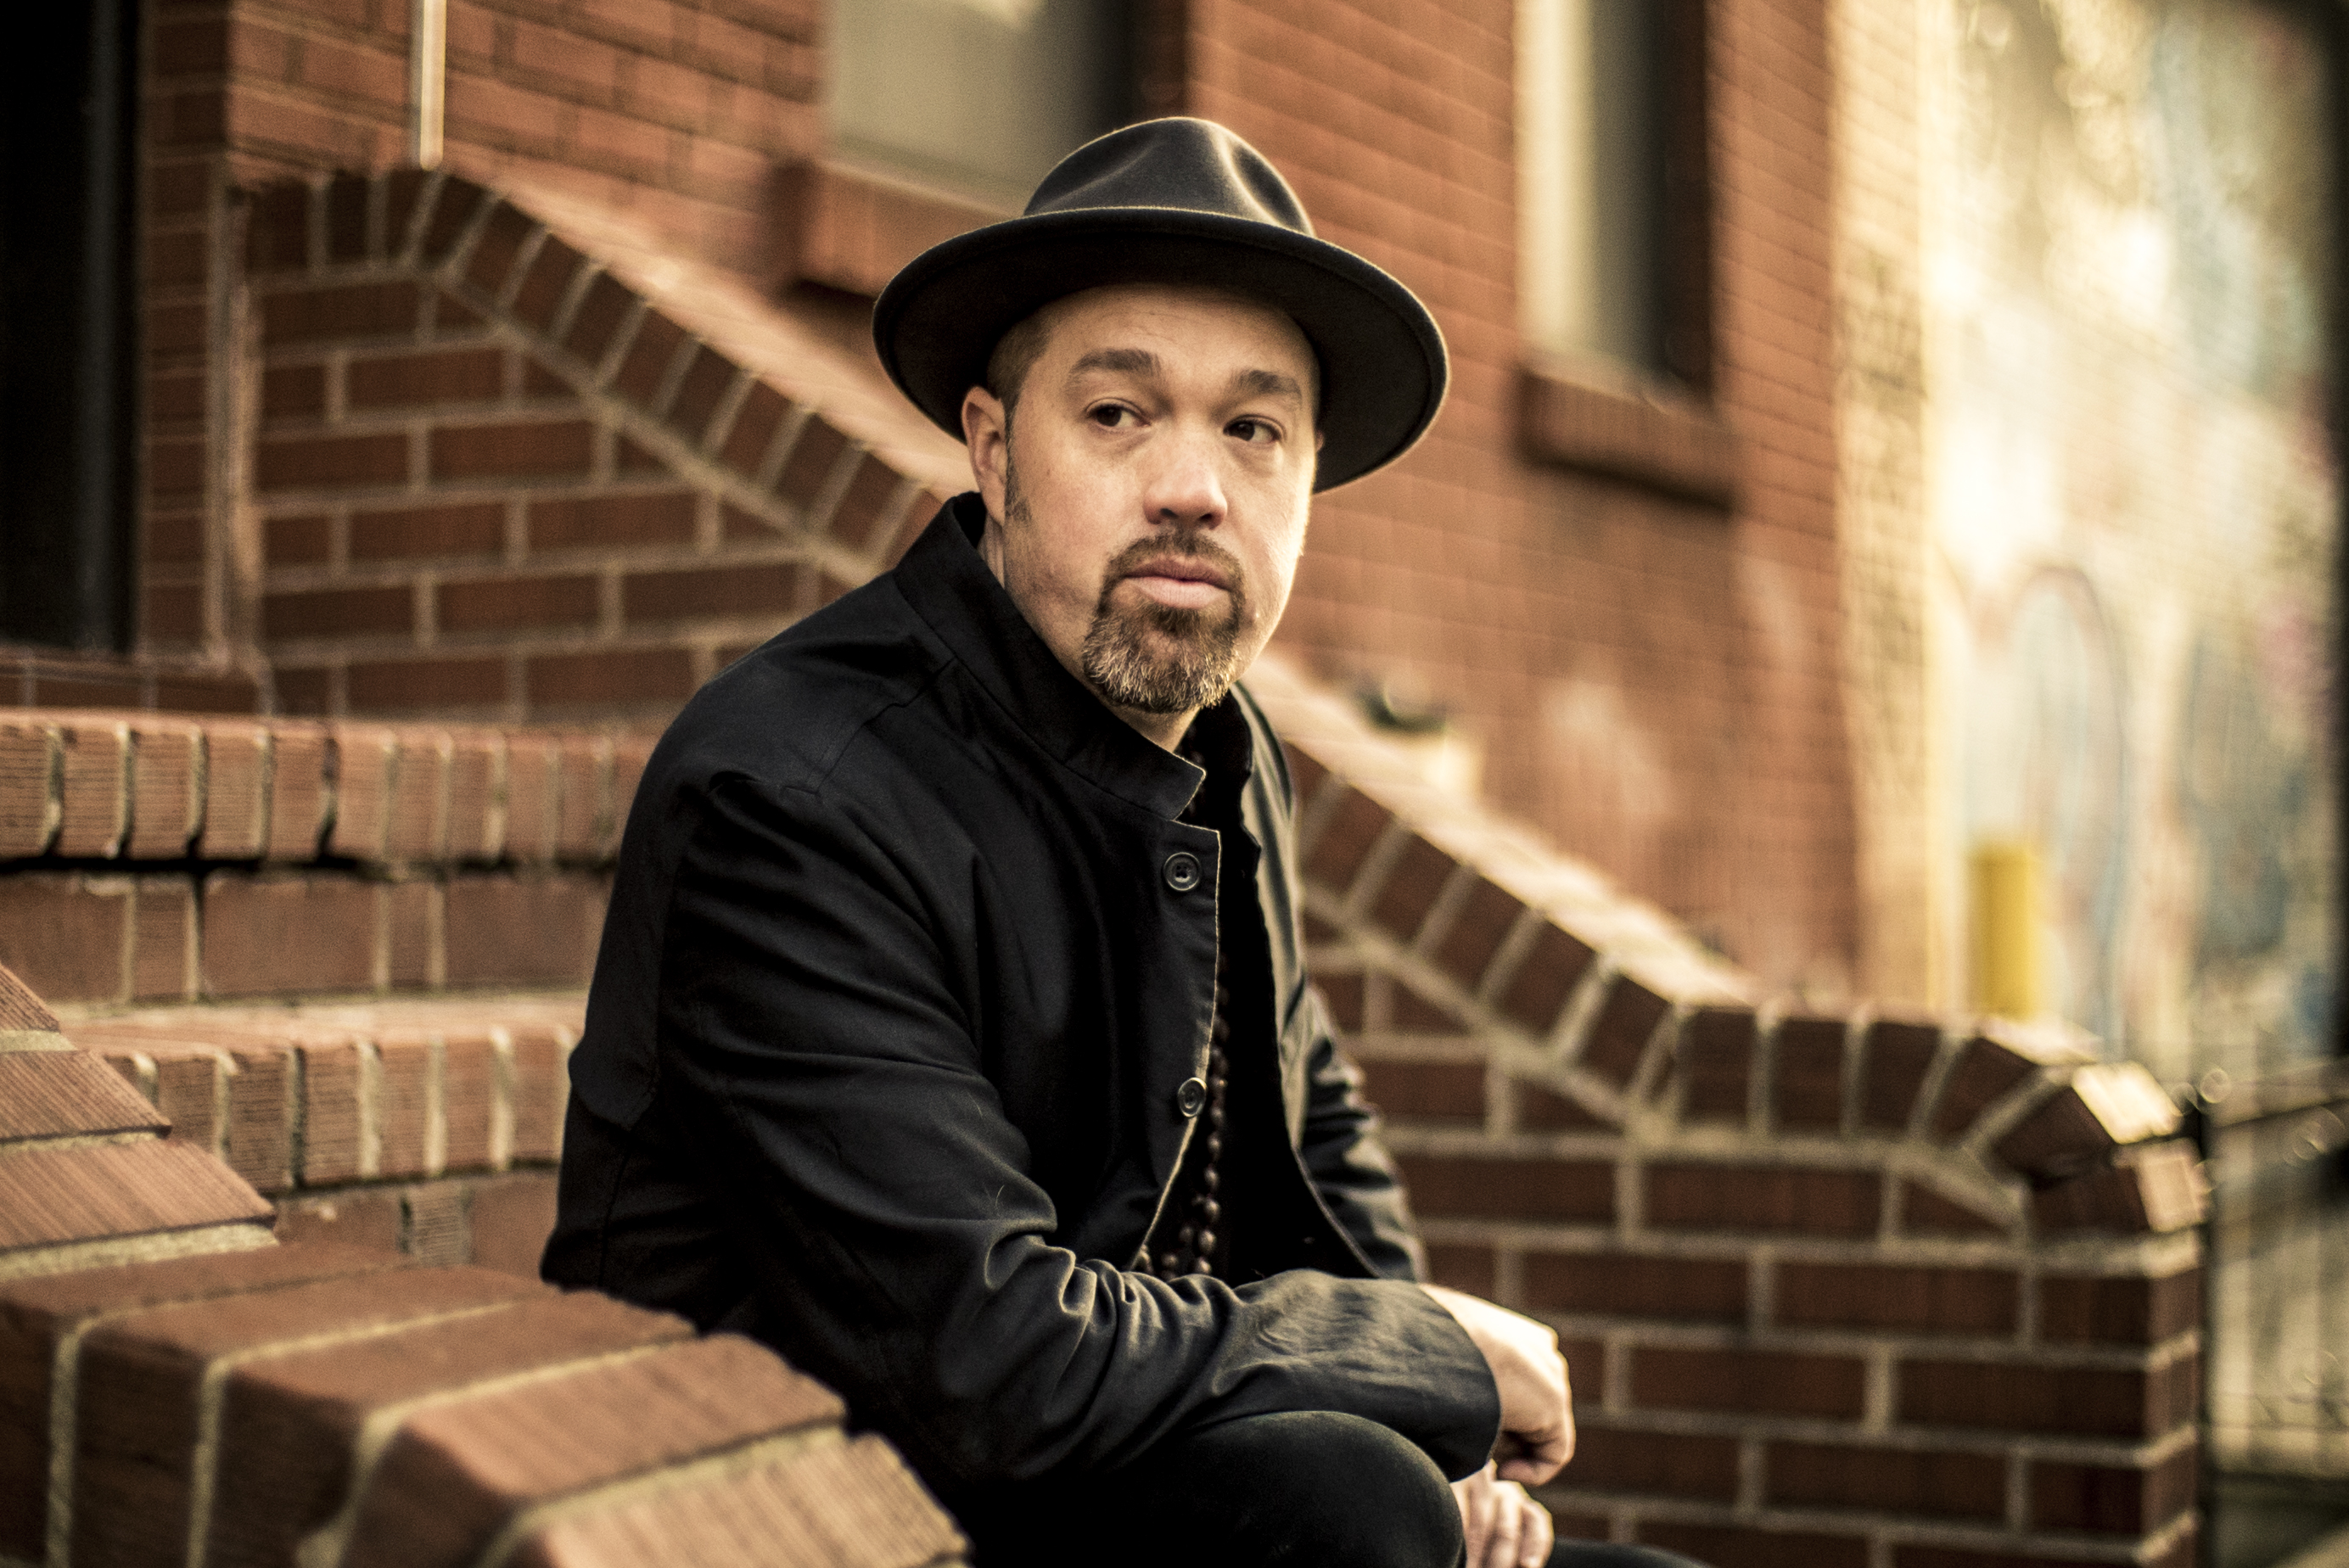 ERIC KRASNO FINDS HIS VOICE ON SOLO DEBUT